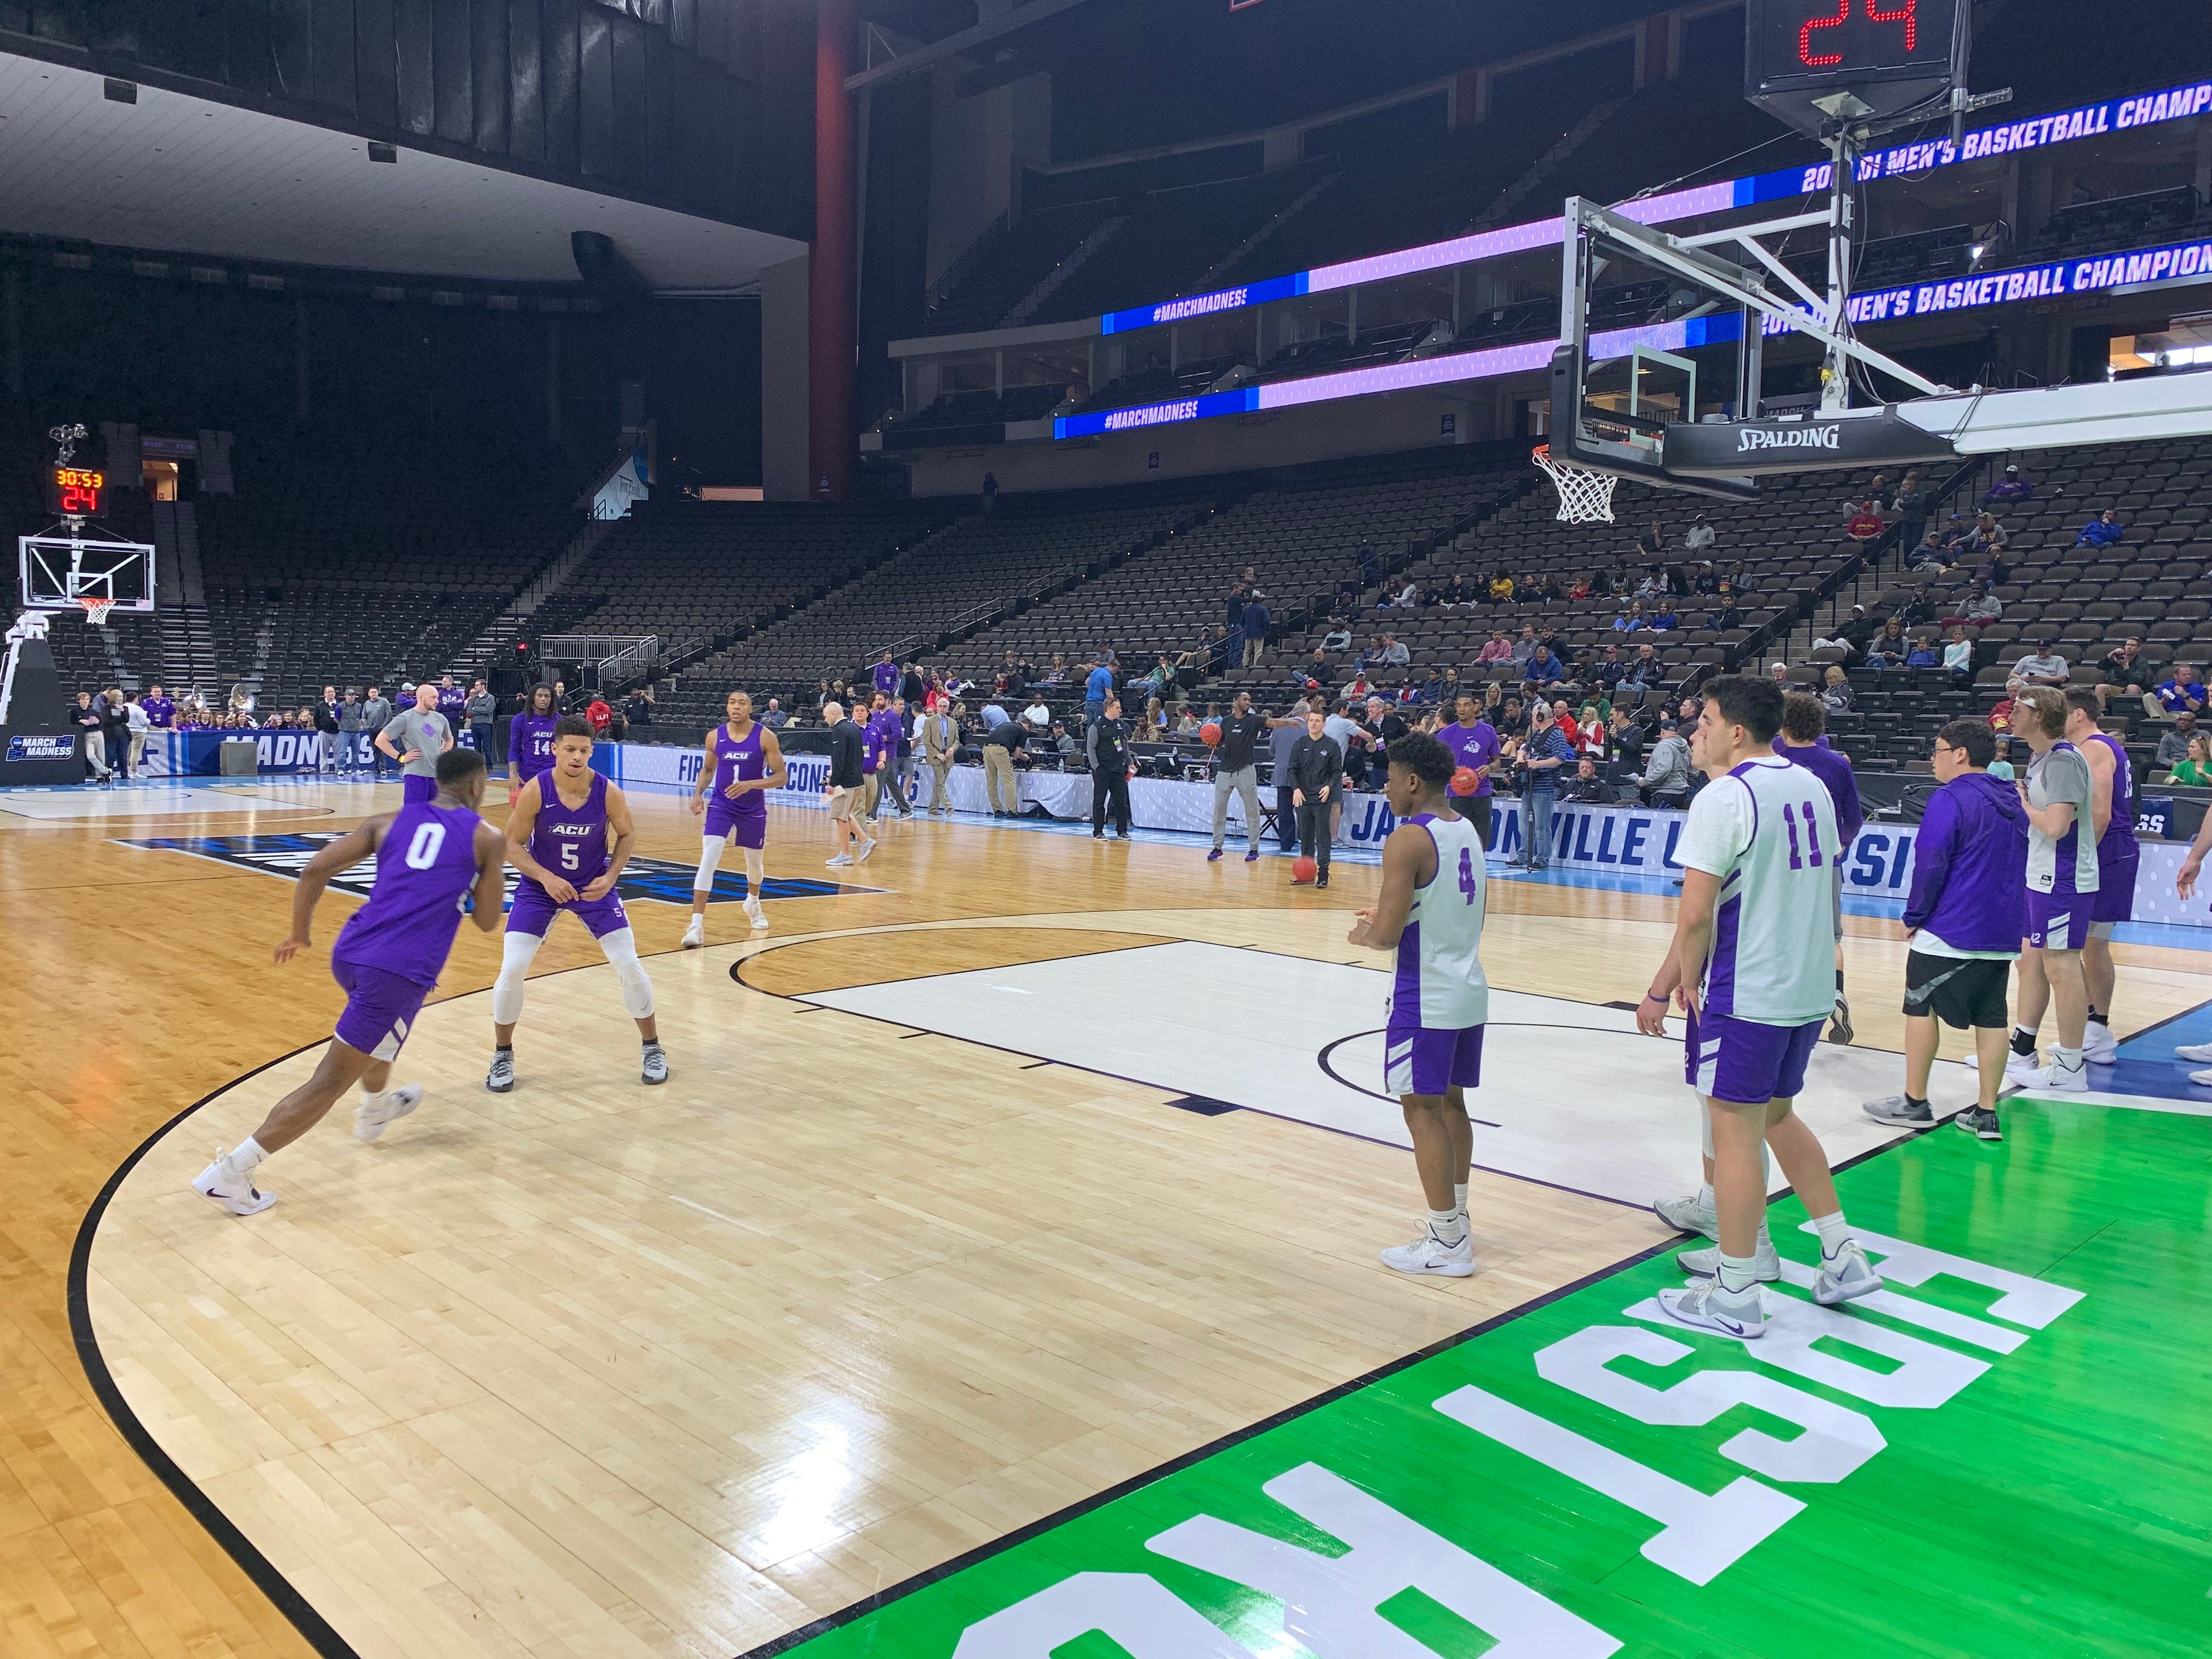 The ACU men's basketball team practices at VyStar Veterans Memorial Arena in Jacksonville on Wednesday, March 20. ACU plays Kentucky in the NCAA Tournament first round on Thursday night.